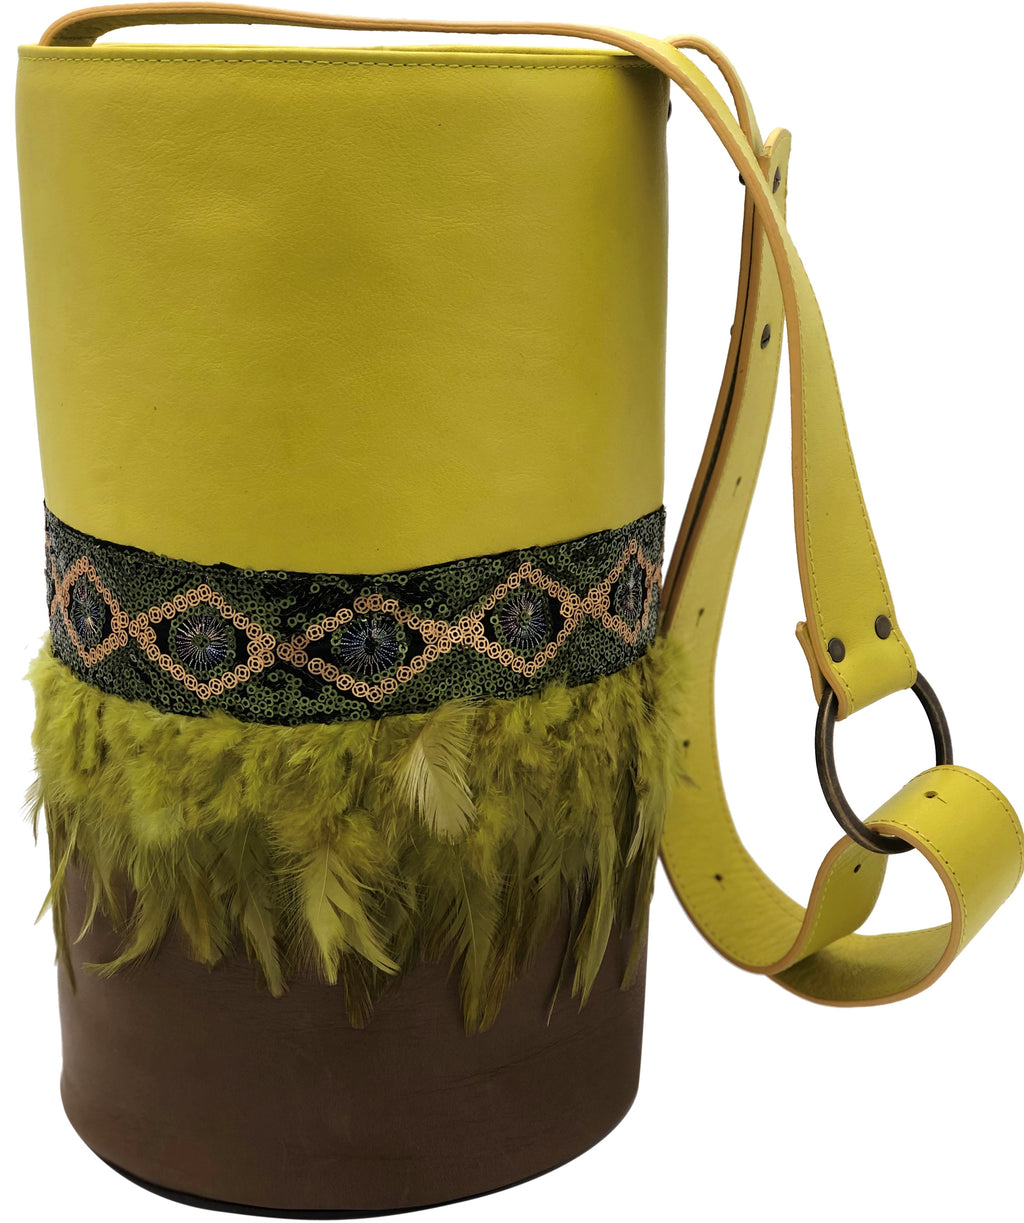 Neon yellow & brown leather bag with feathers